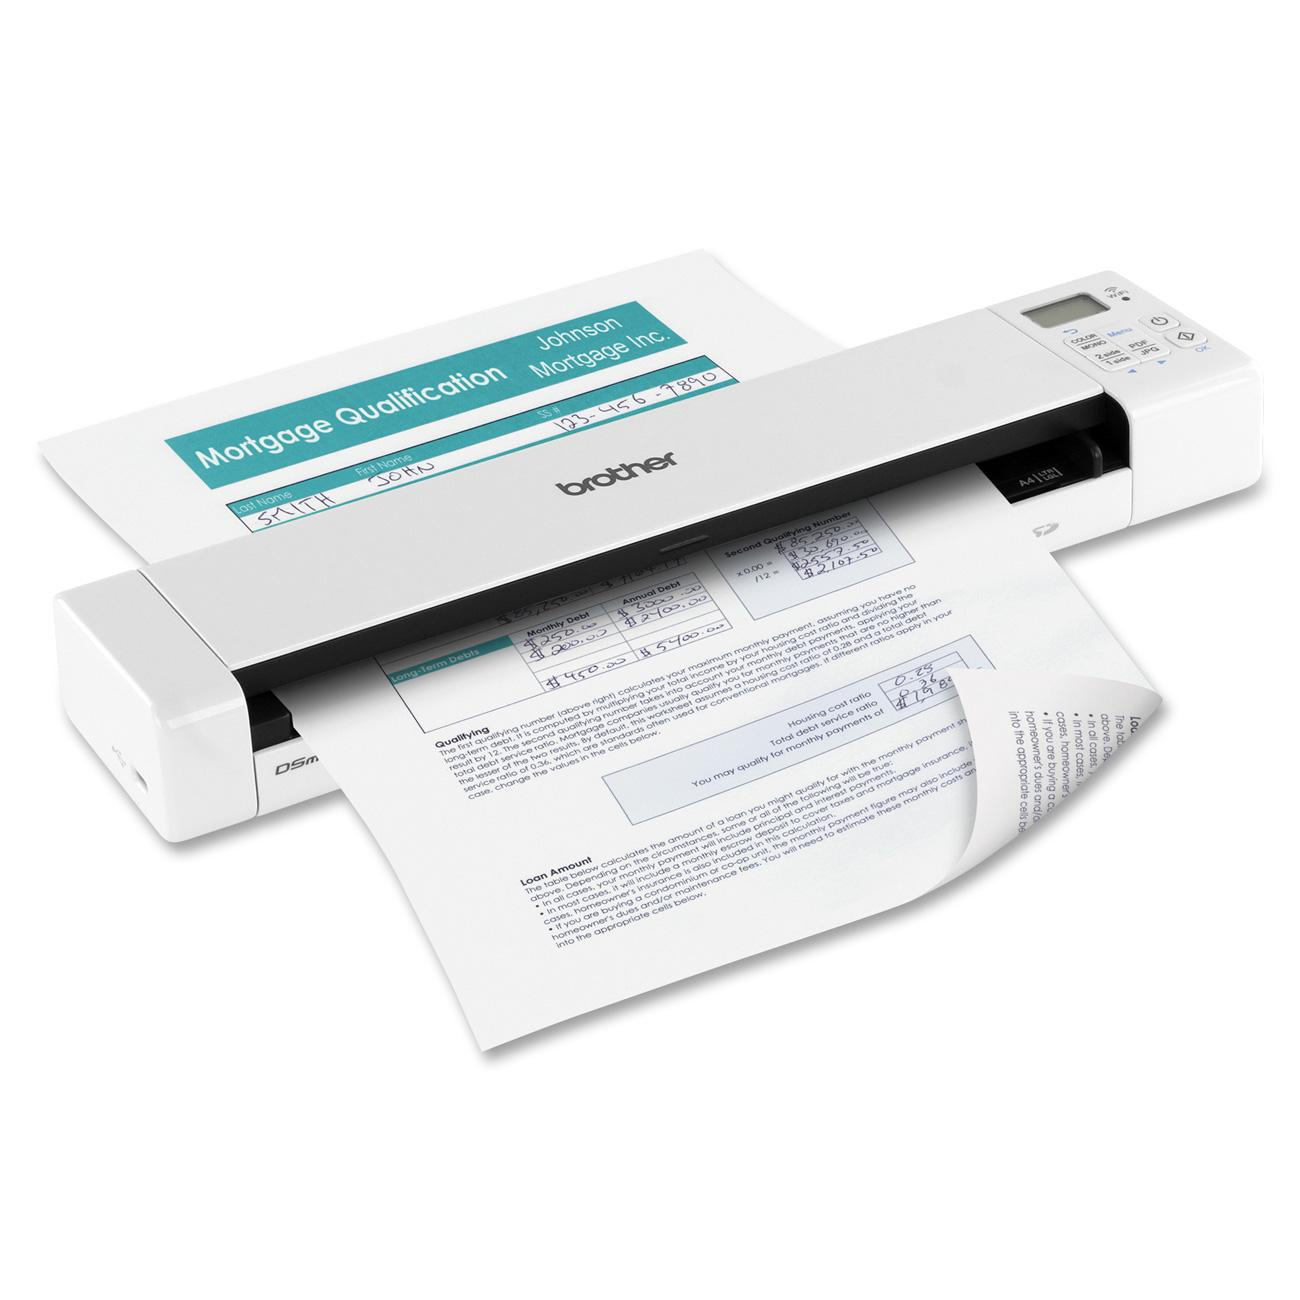 Wi-Fi Transfer Compact and Lightweight Brother Wireless Mobile Color Page Scanner DS-920DW White Fast Scanning Speeds